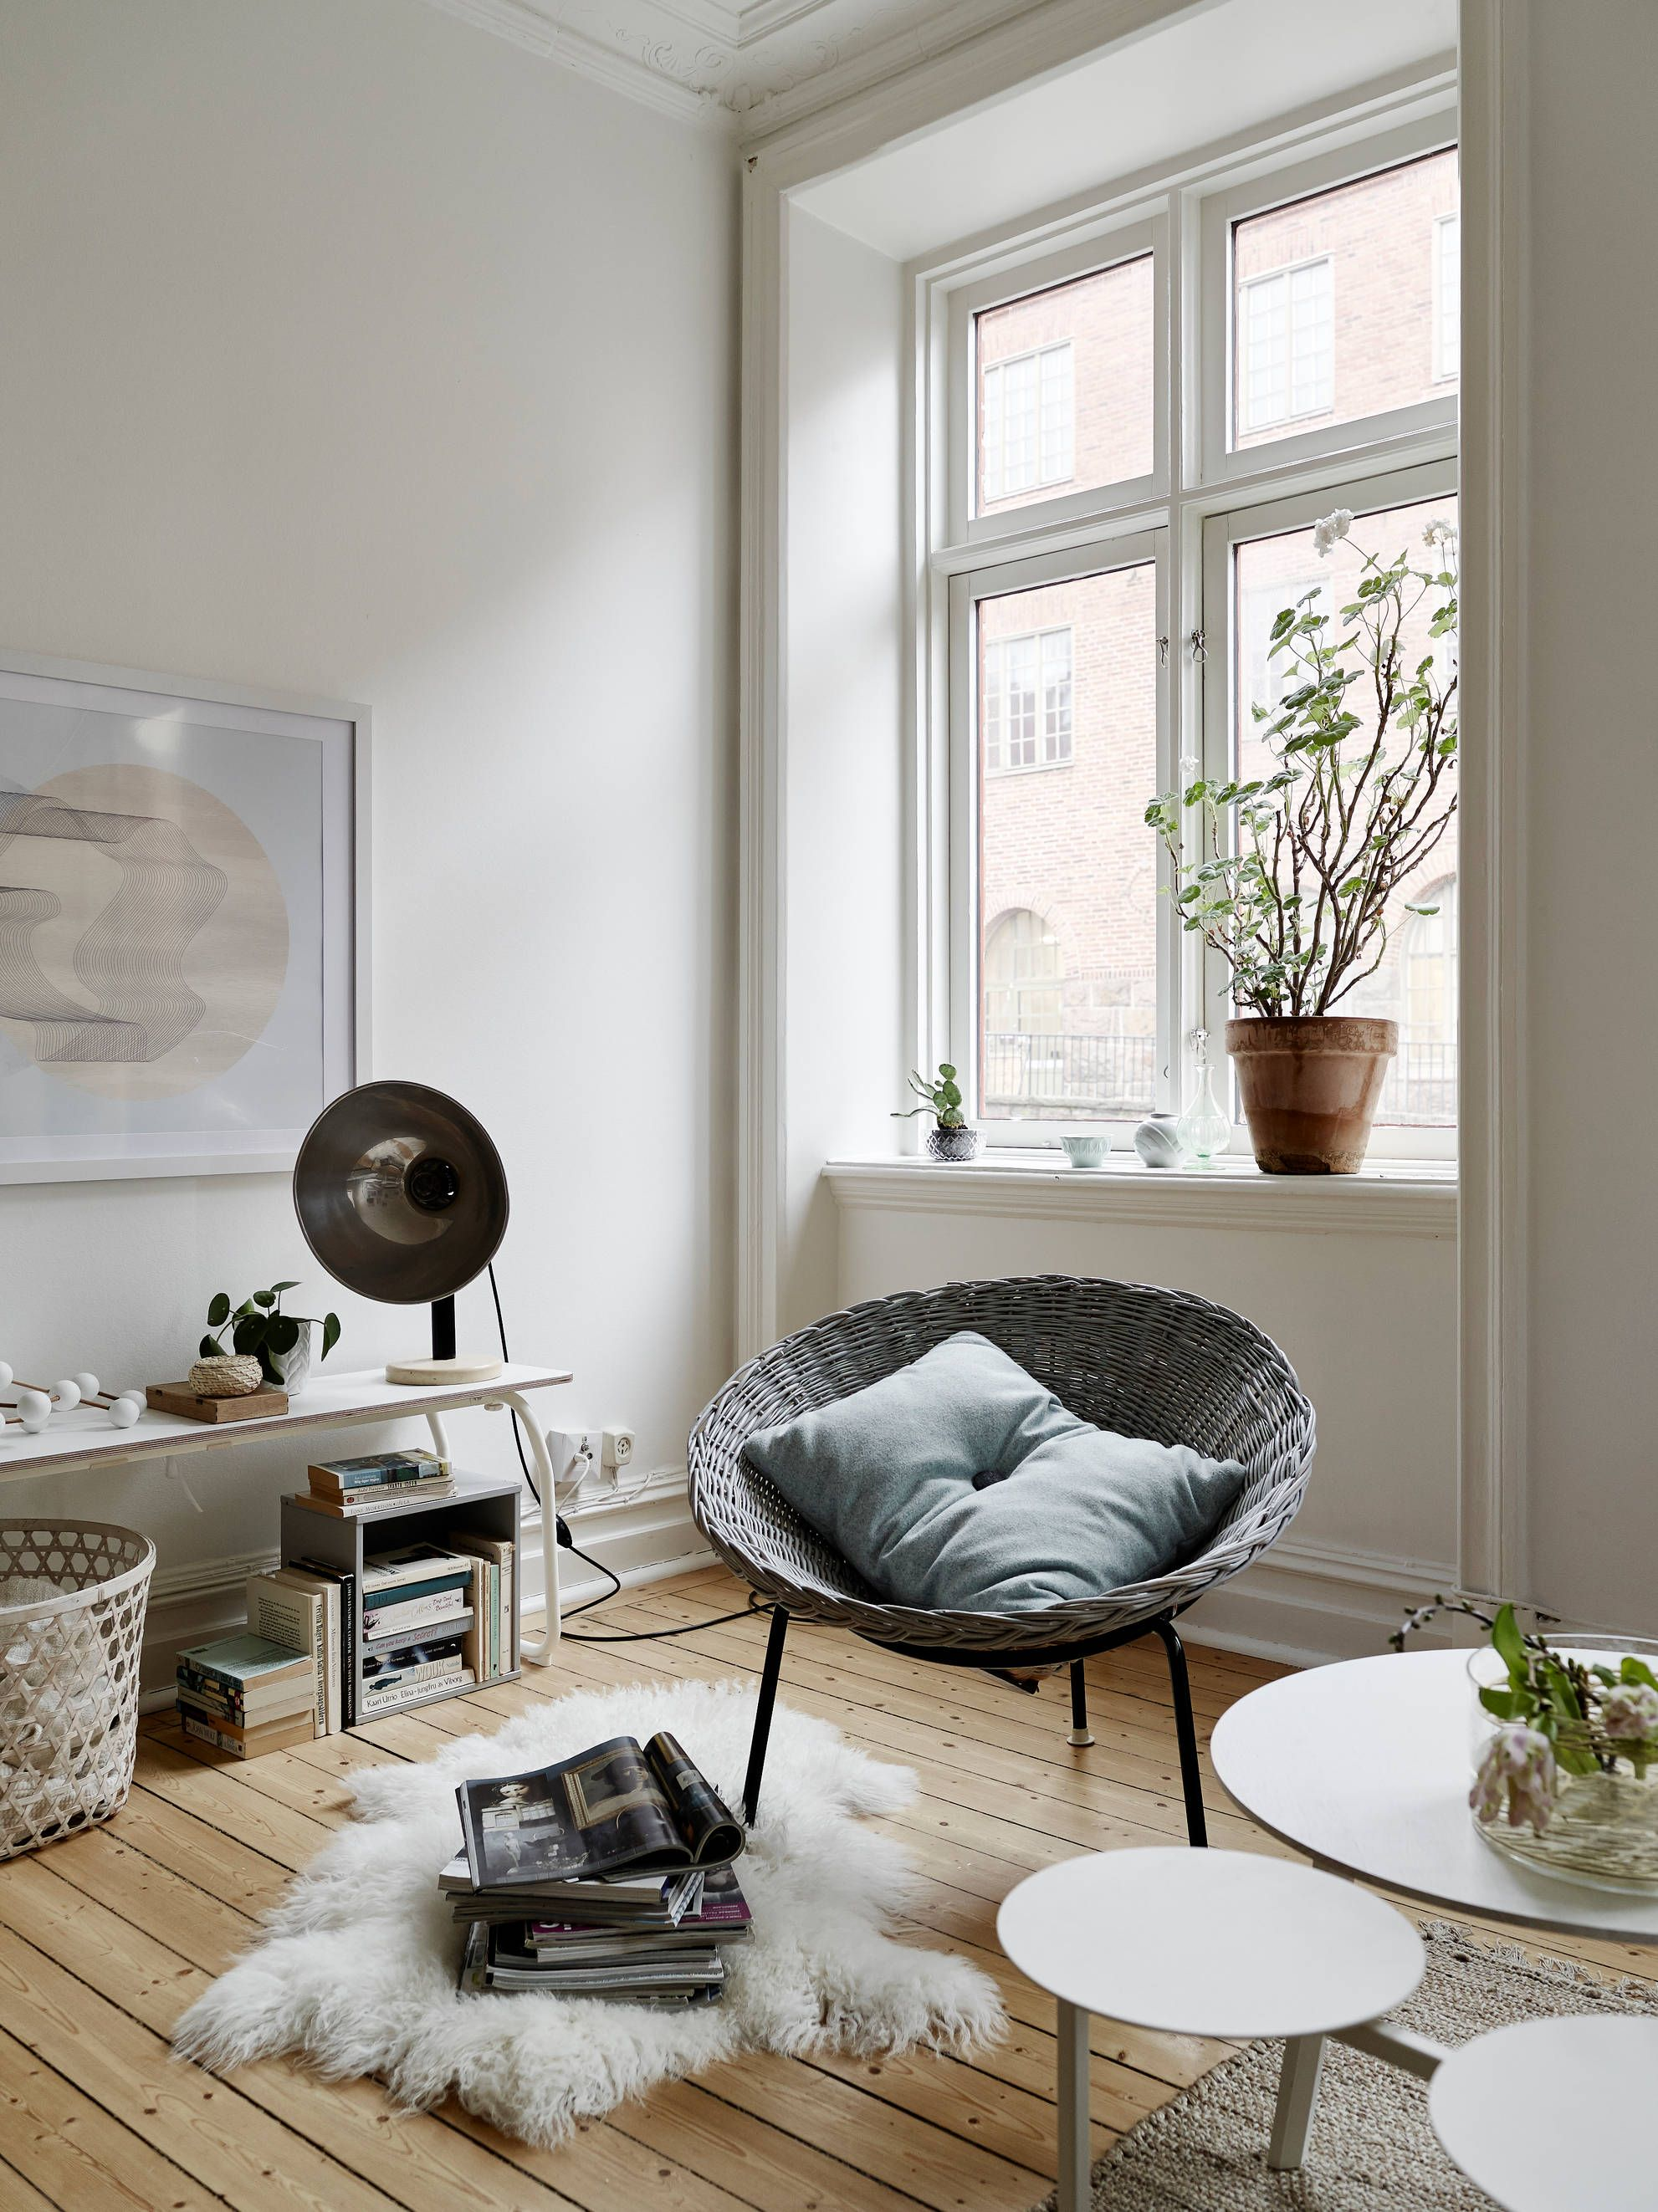 Home Tour Natural Style In A Small Swedish Apartment